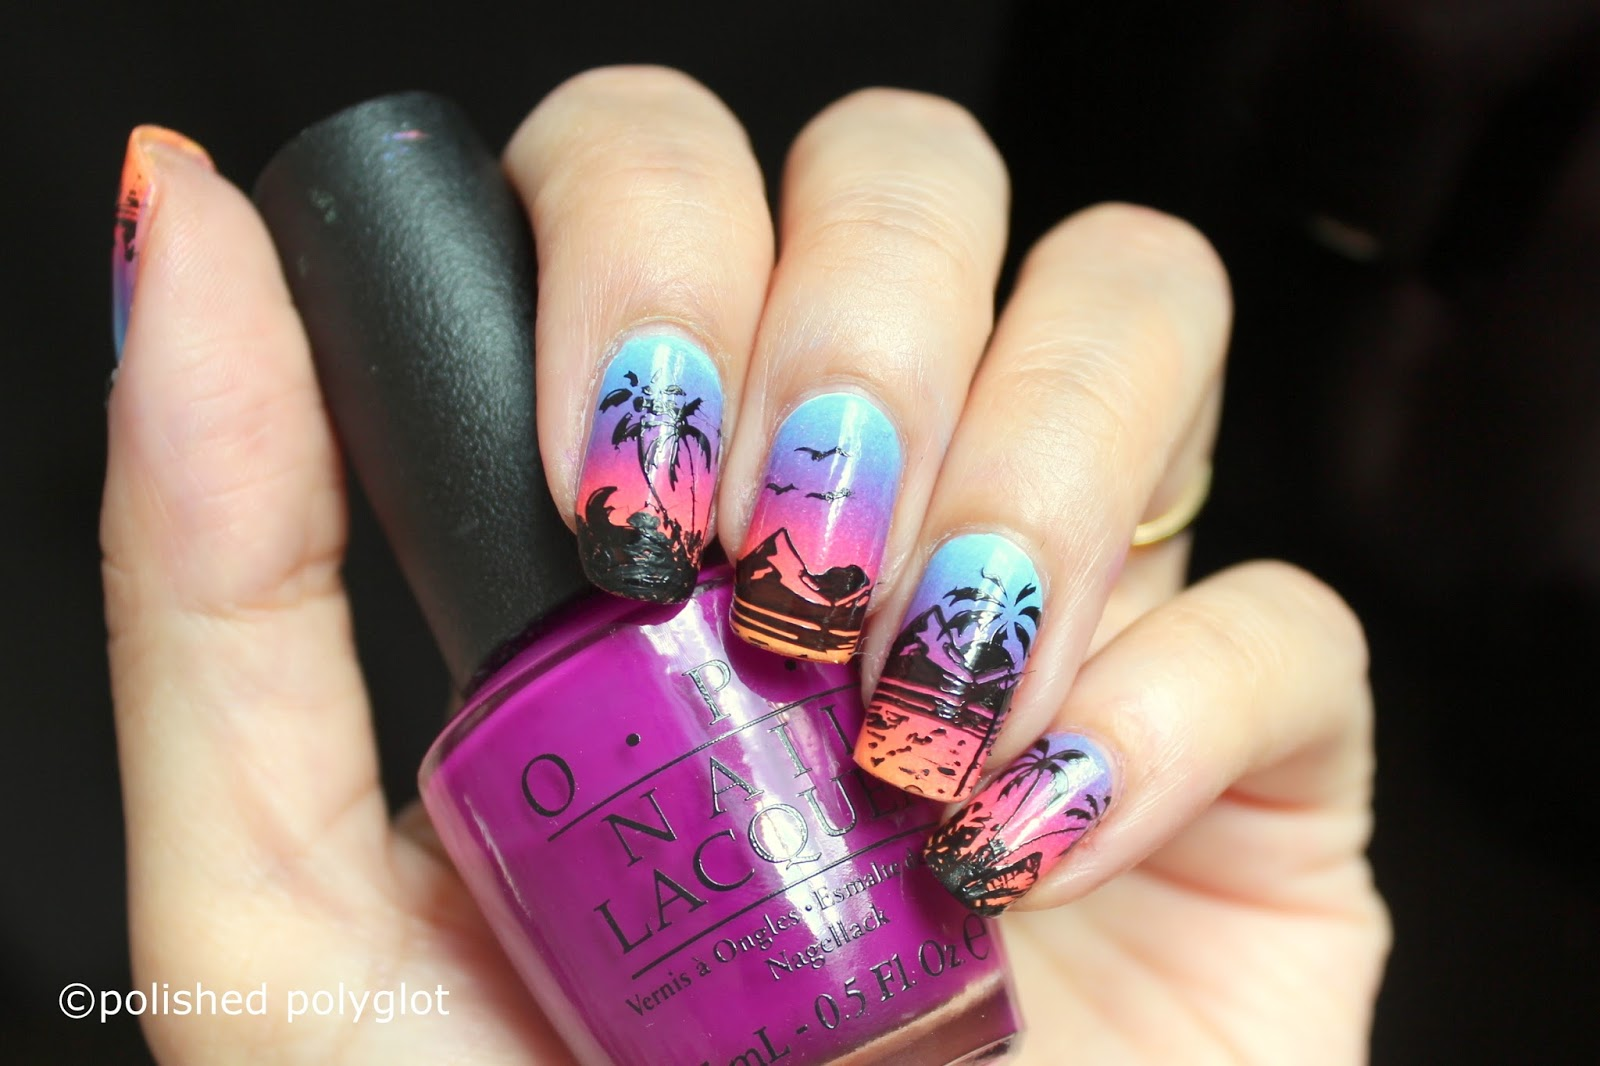 Nail art sunrise on the beach inspired nail design 26gnai its time for another nail art design this time the 26 great nail art ideas challenge is about beach or animal silhouettes so i thought to do a sunrise prinsesfo Choice Image